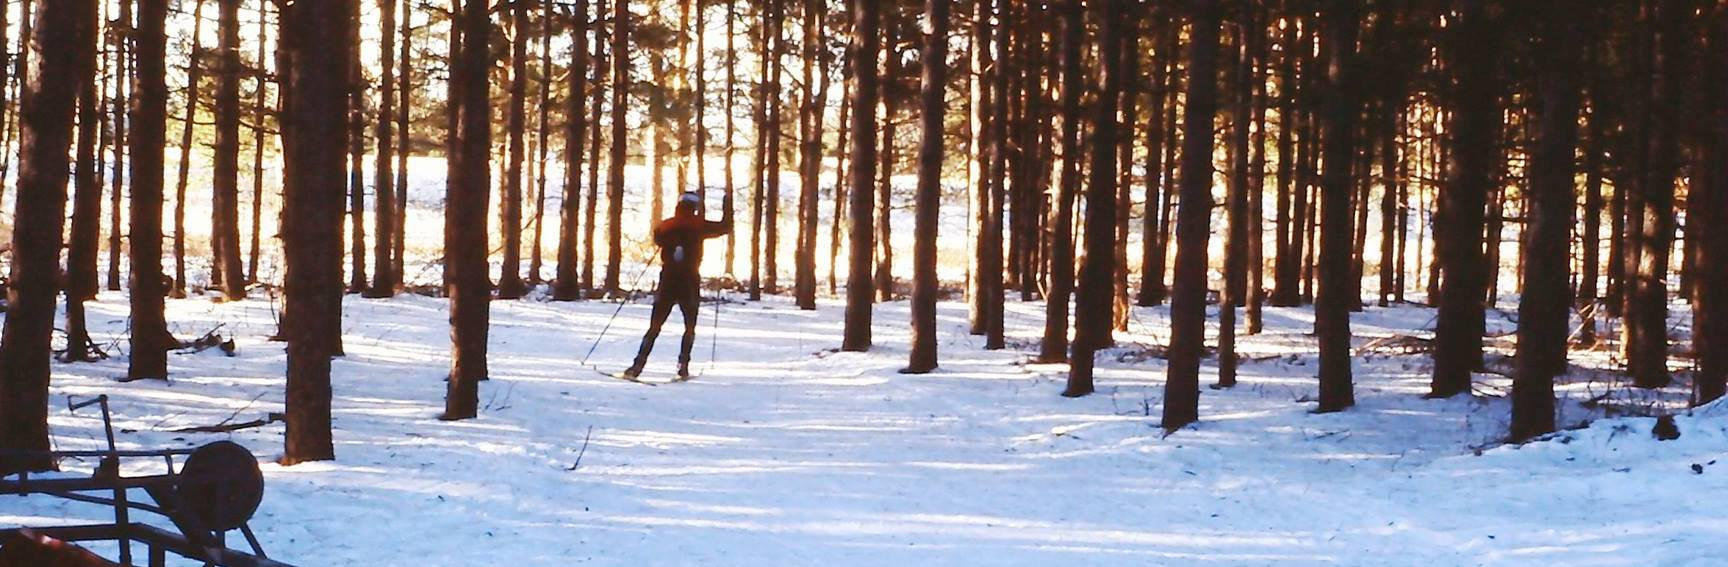 Cross-country skier at Sawmill Nordic Centre, Hepworth, Ontario - 1999